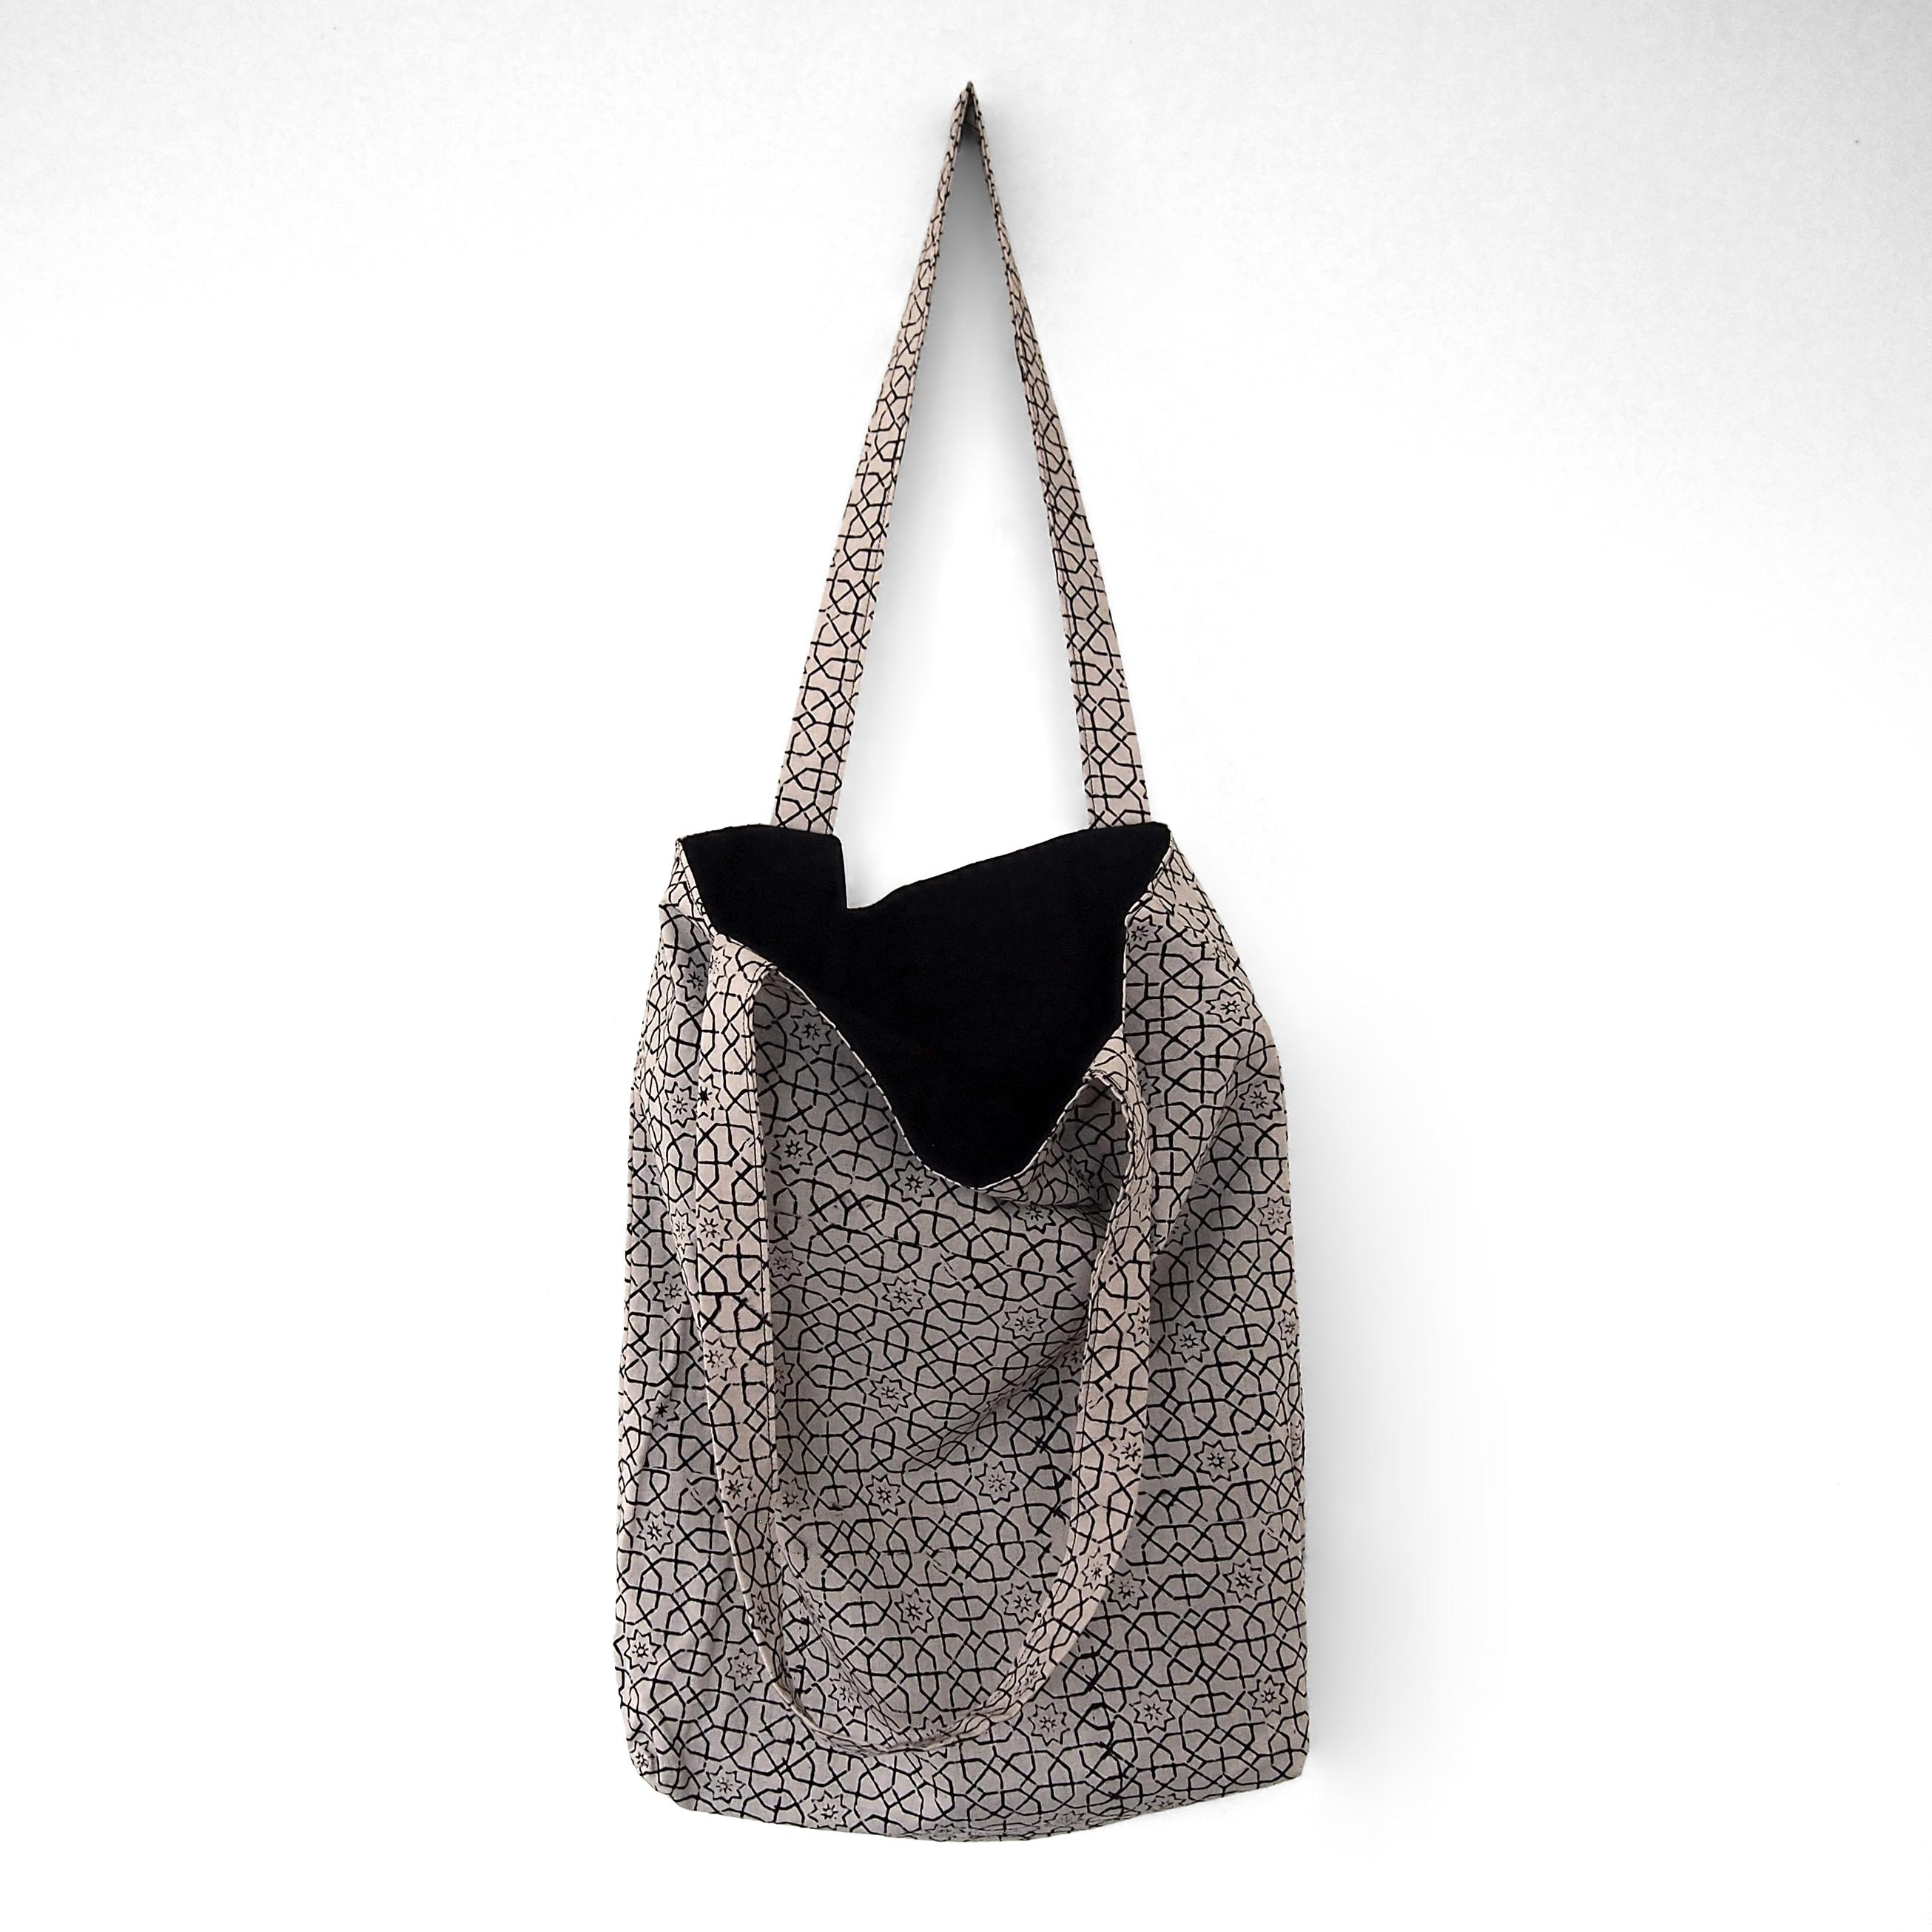 block printed cotton tote bag, natural dye, beige, black octagon design, lined with black cotton, closed